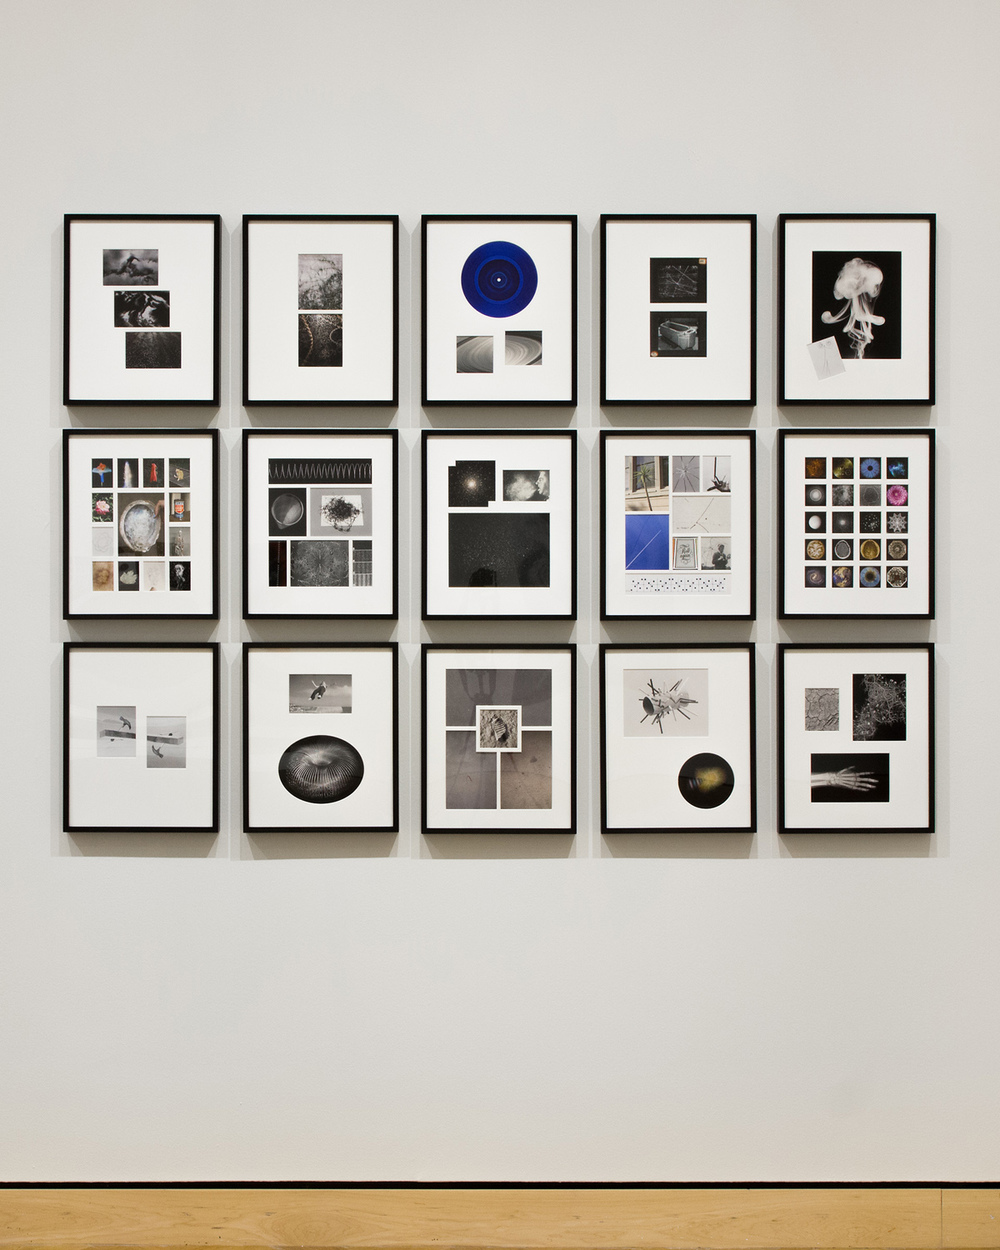 Arrangement for Wall, 2010-2014